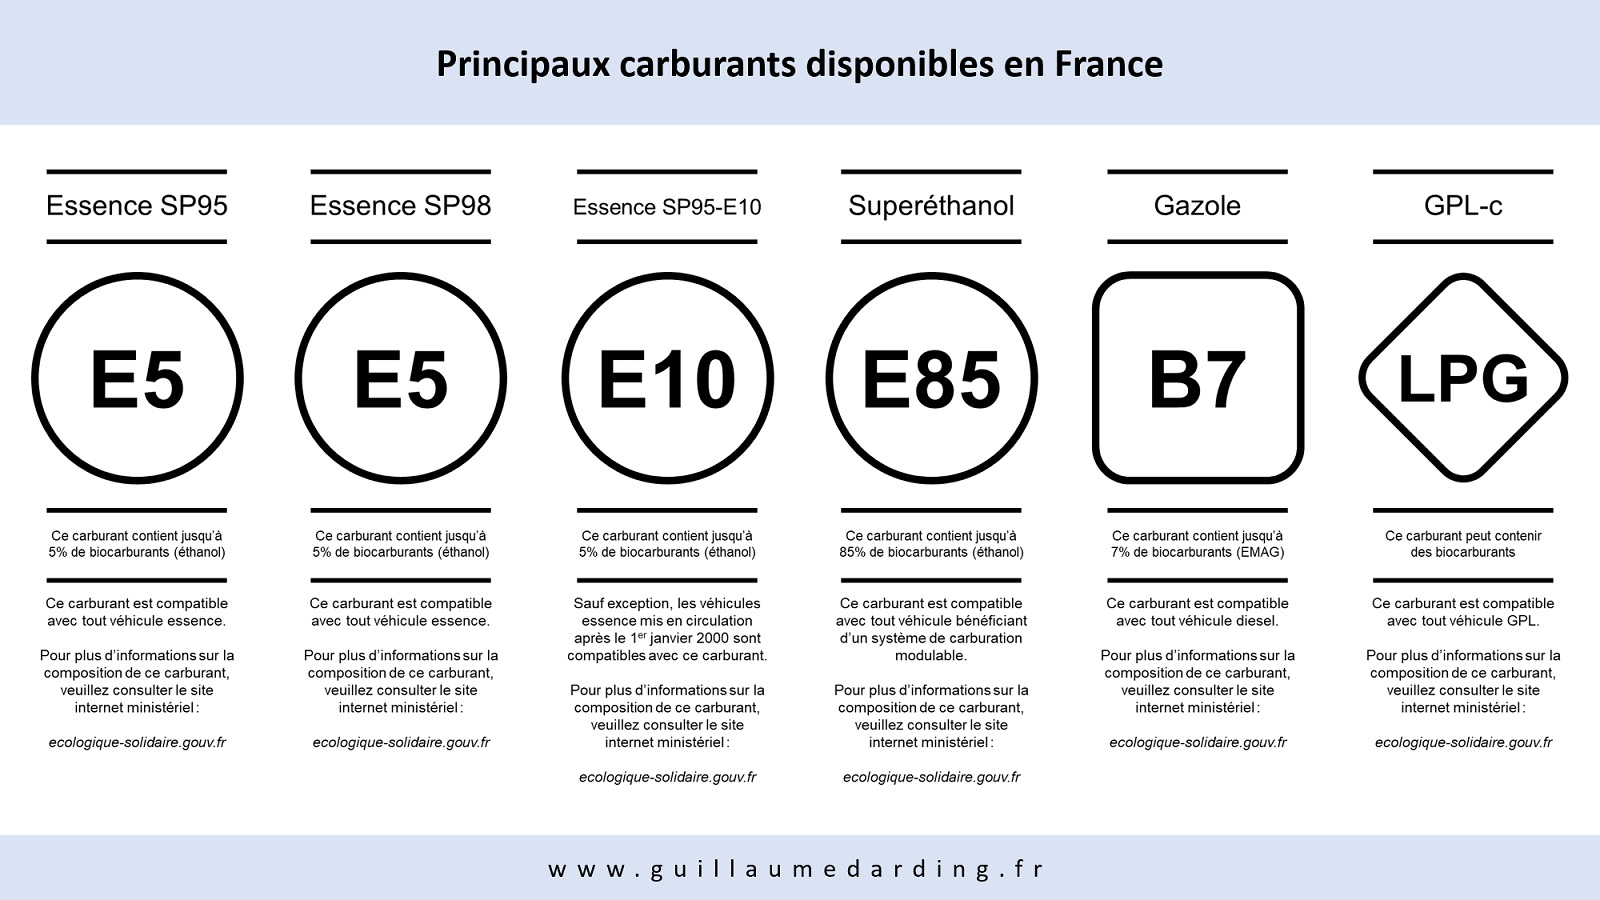 Identification des principaux carburants disponibles en France en 2018